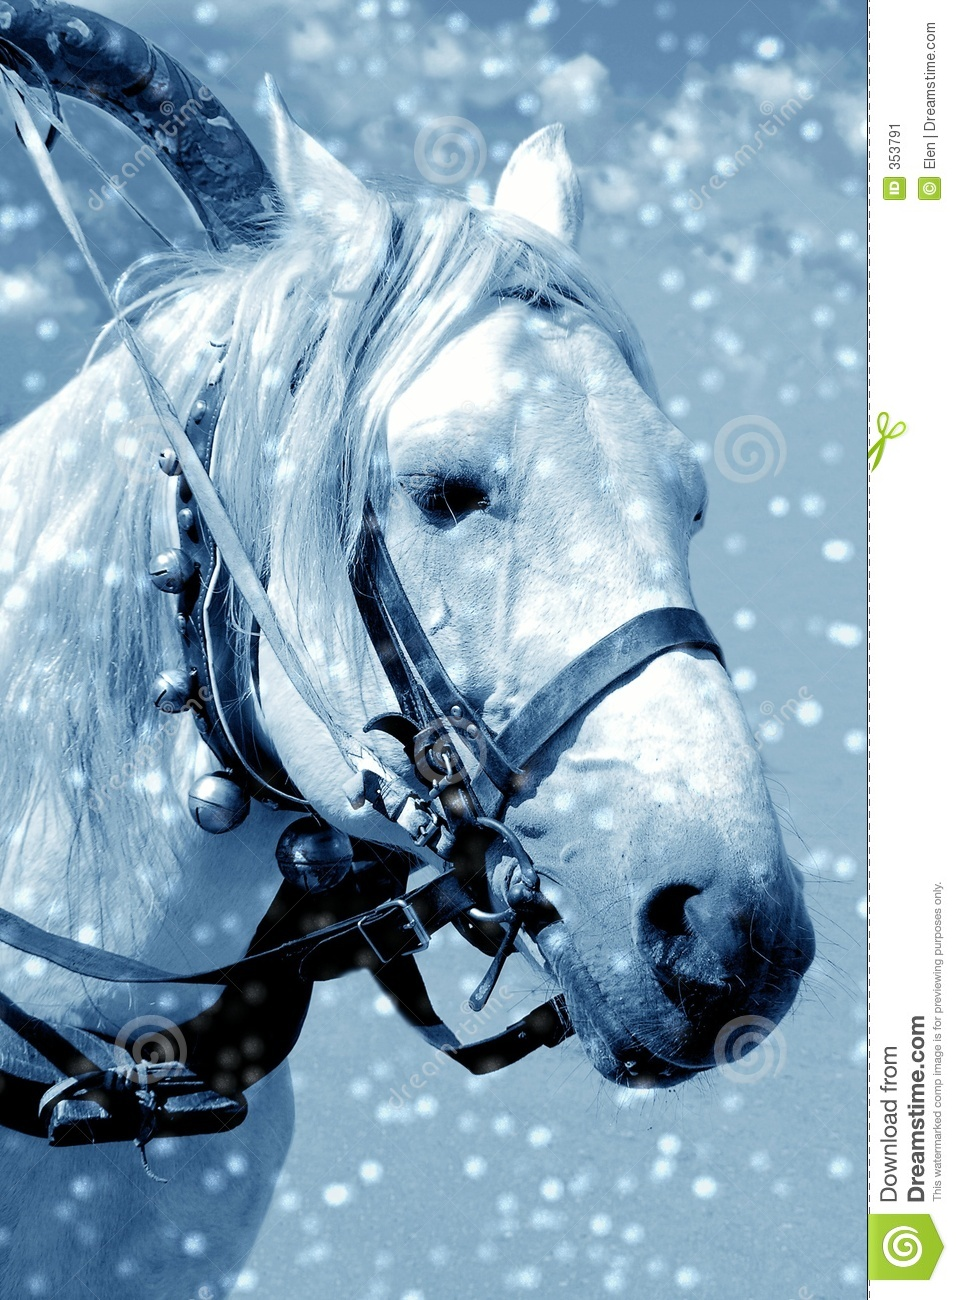 horse in snow stock image  image of night  background  white